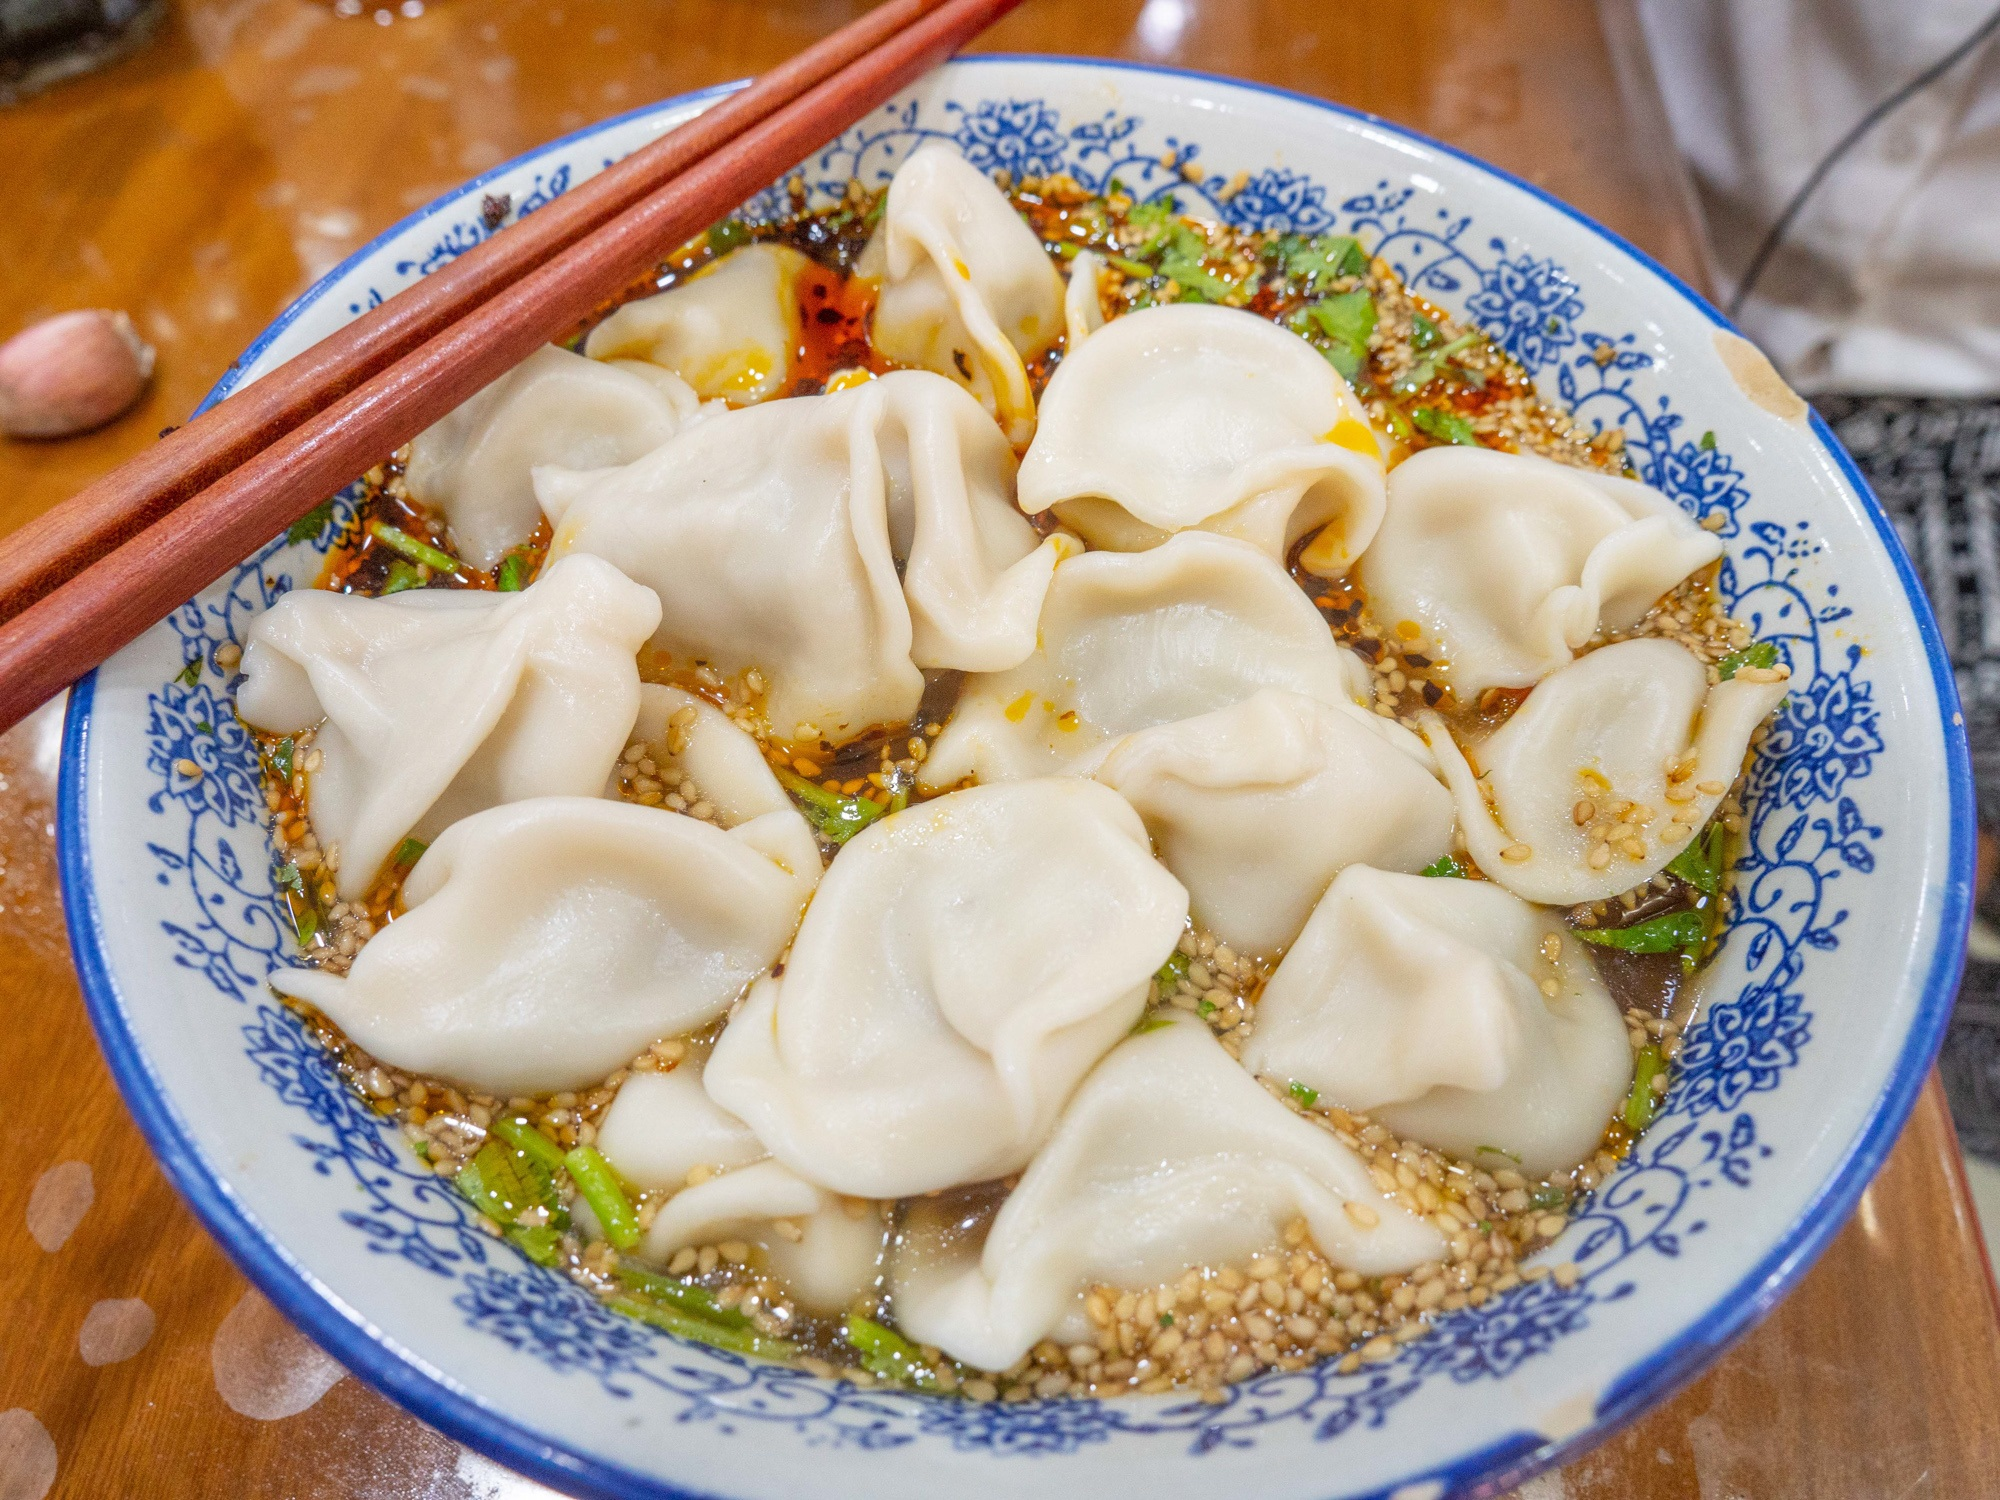 These are some of the best jiaozi I've ever had in China, if not THE BEST. Make sure to try them out when you travel to Xi'an!